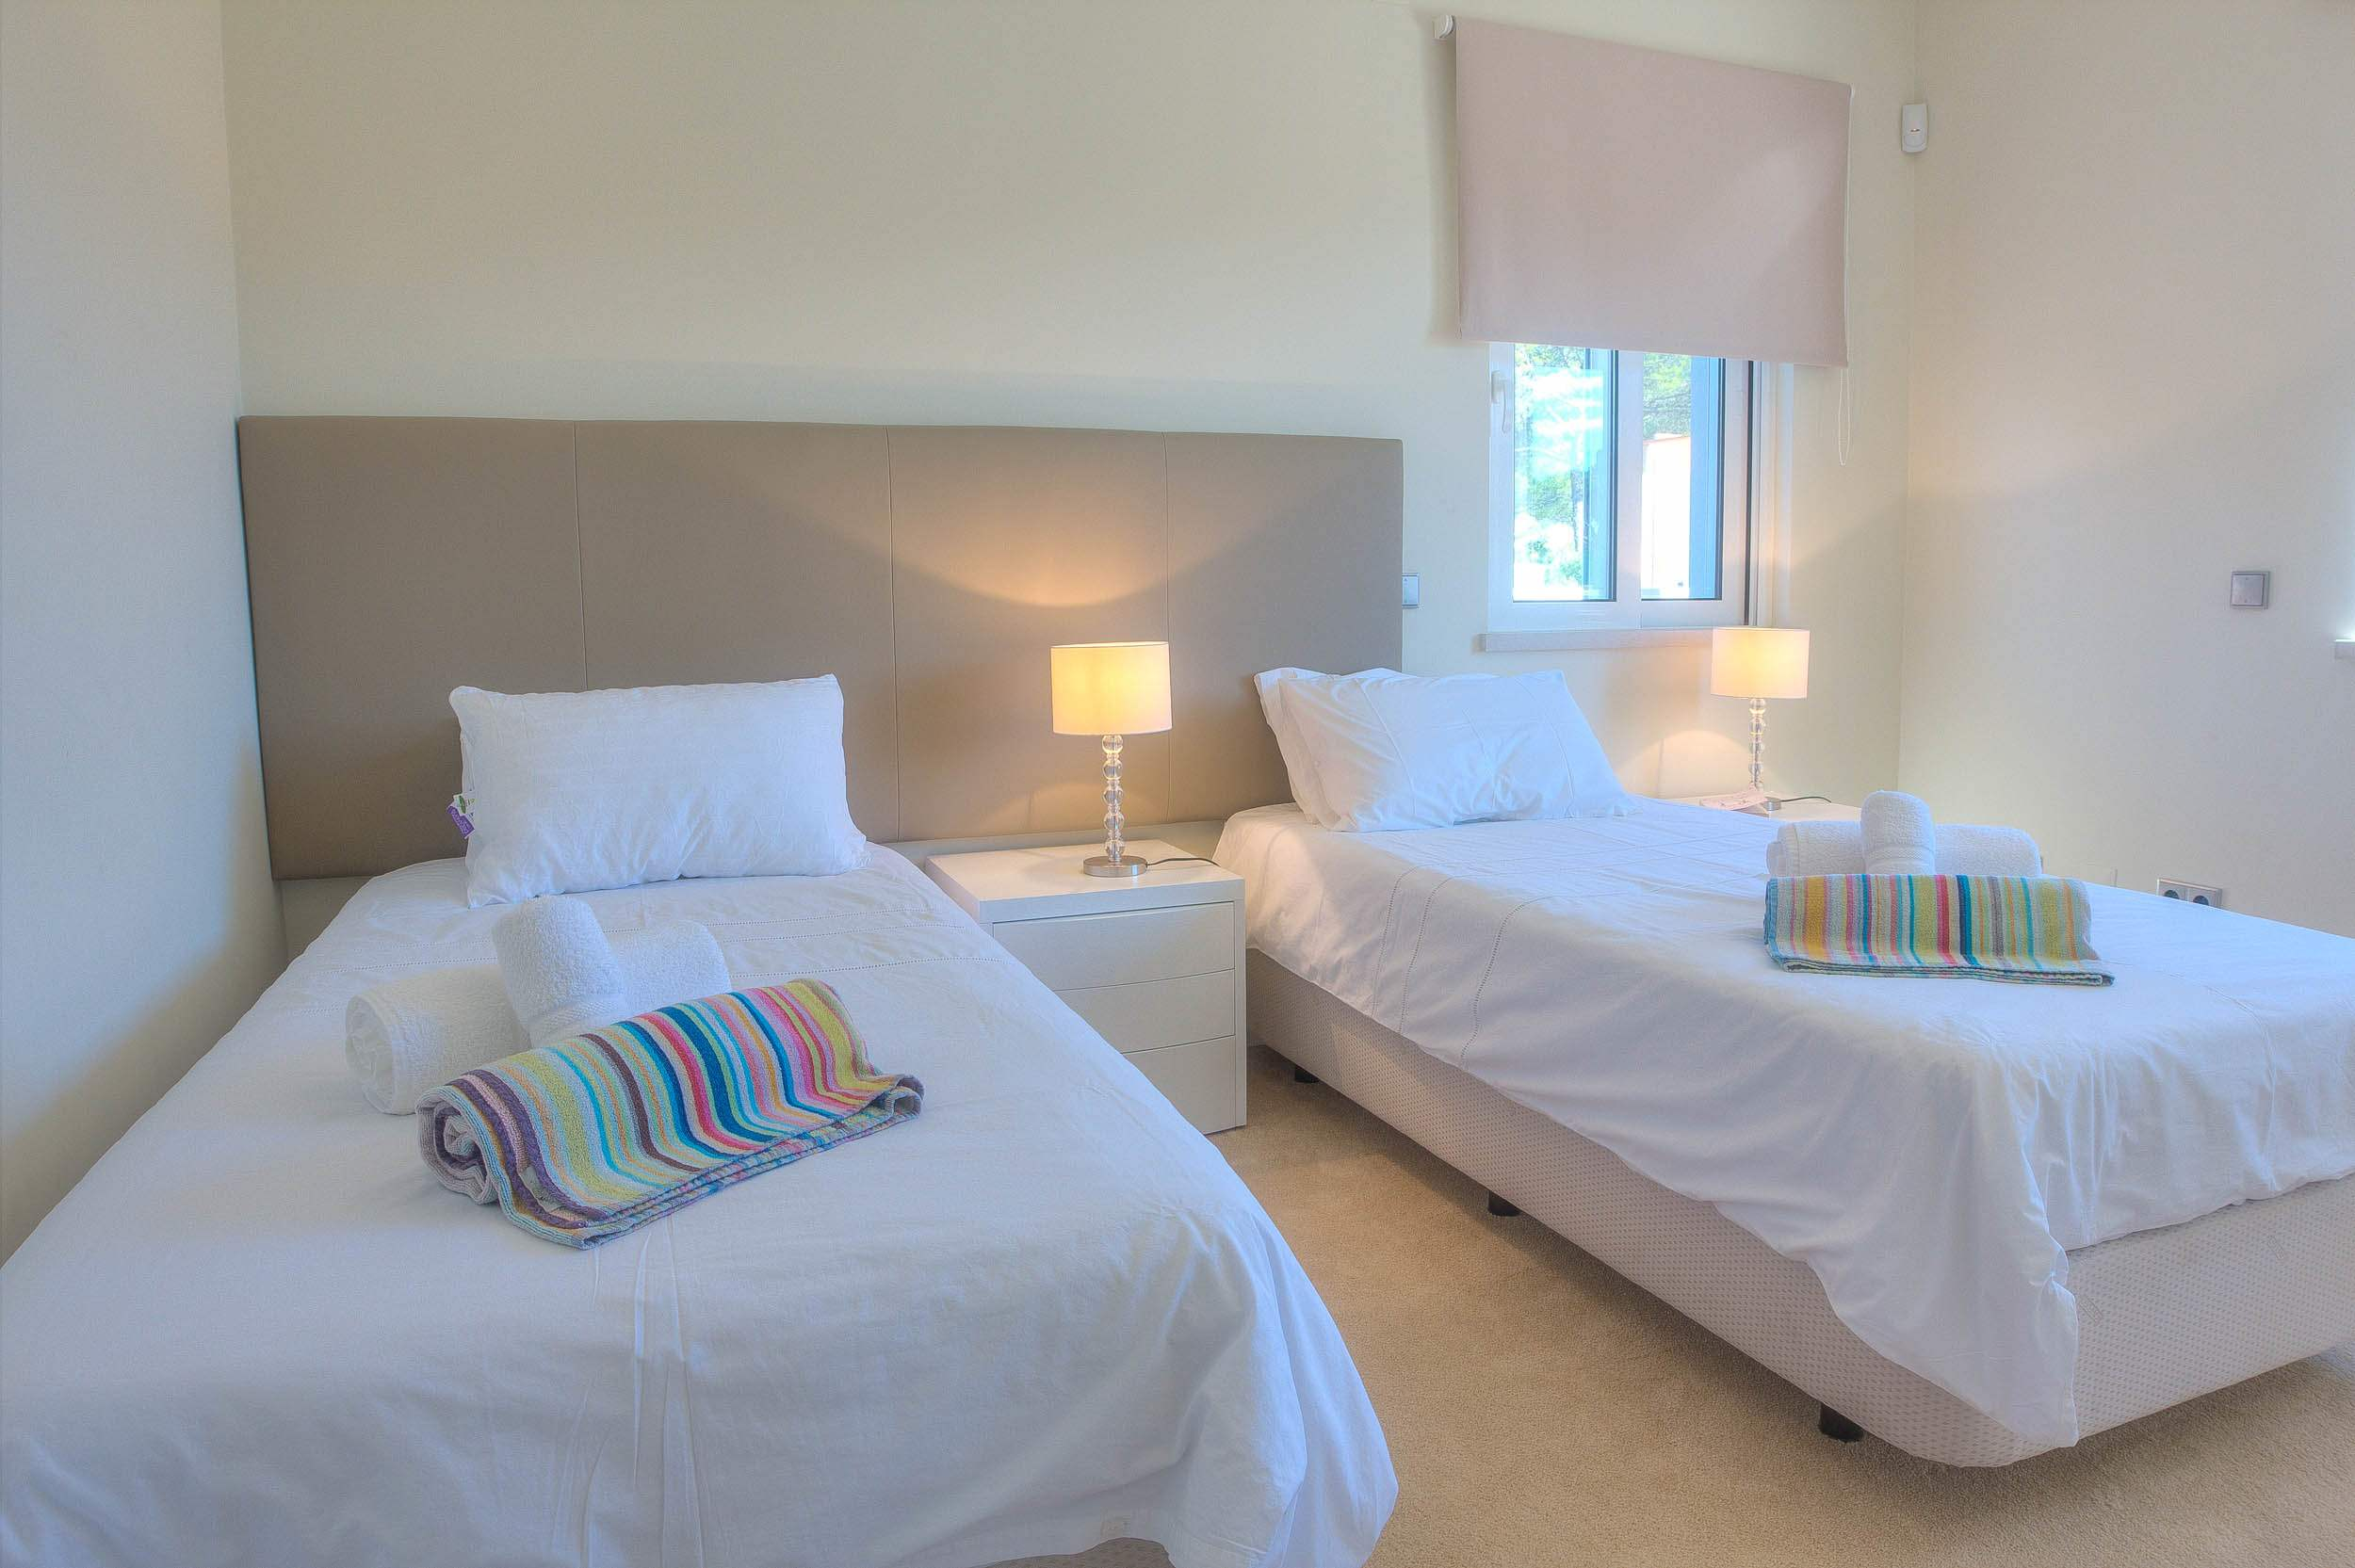 Villa Vida Doce, 6 bedroom villa in Vilamoura Area, Algarve Photo #26